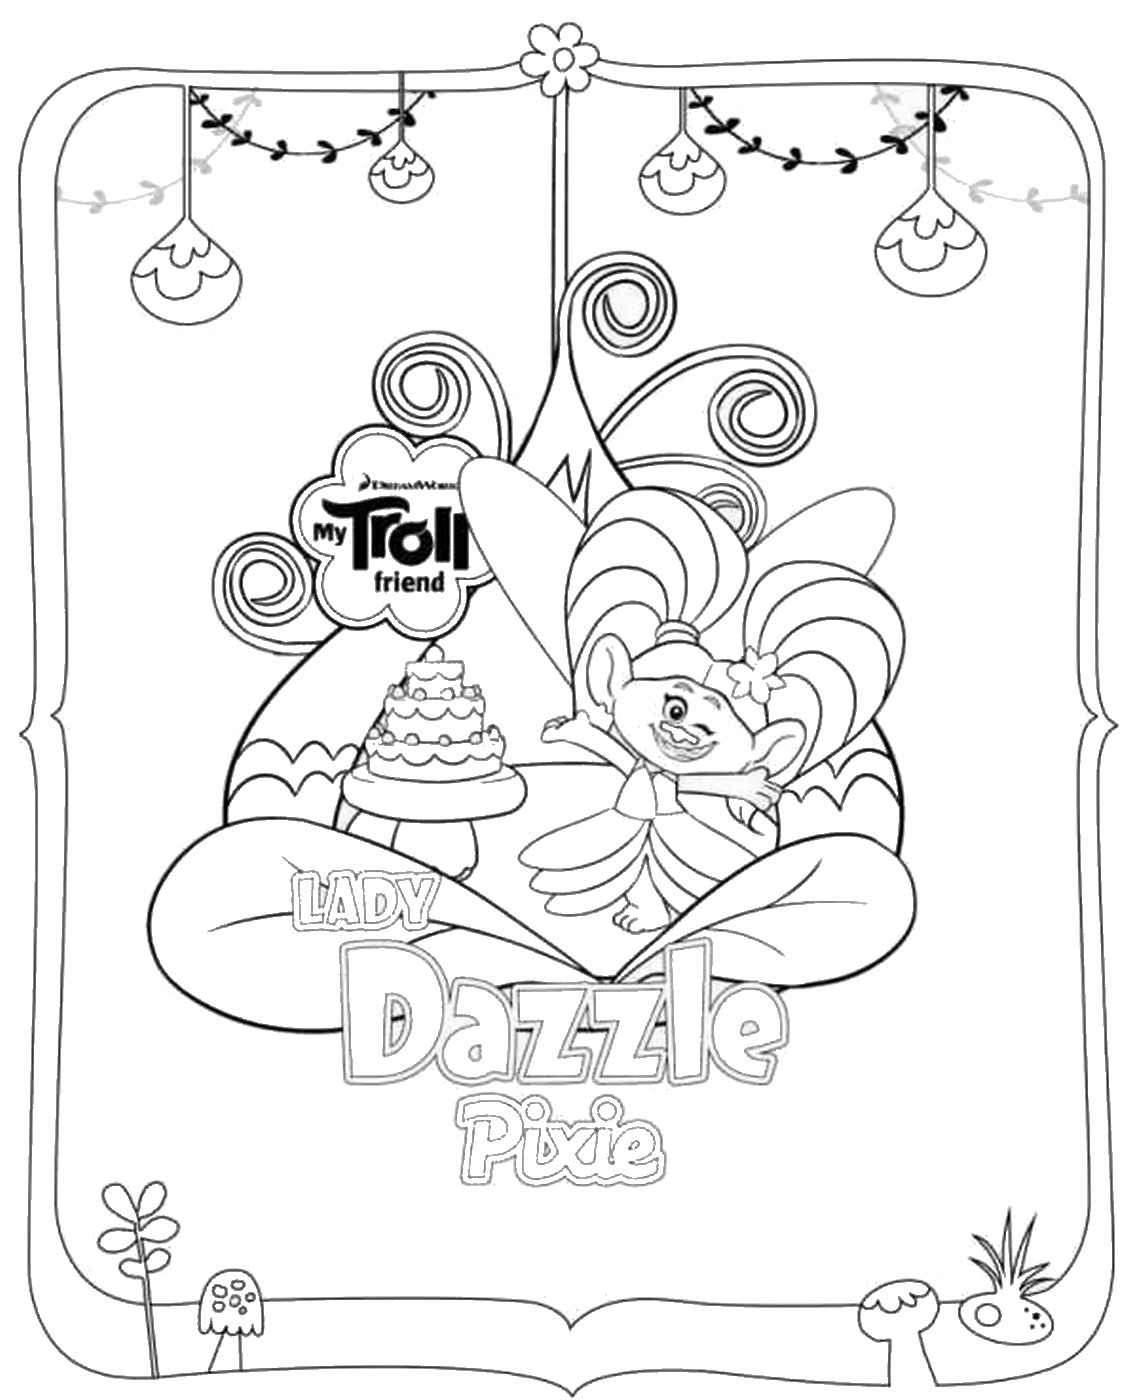 movie trolls coloring pages - trolls movie free coloring pages